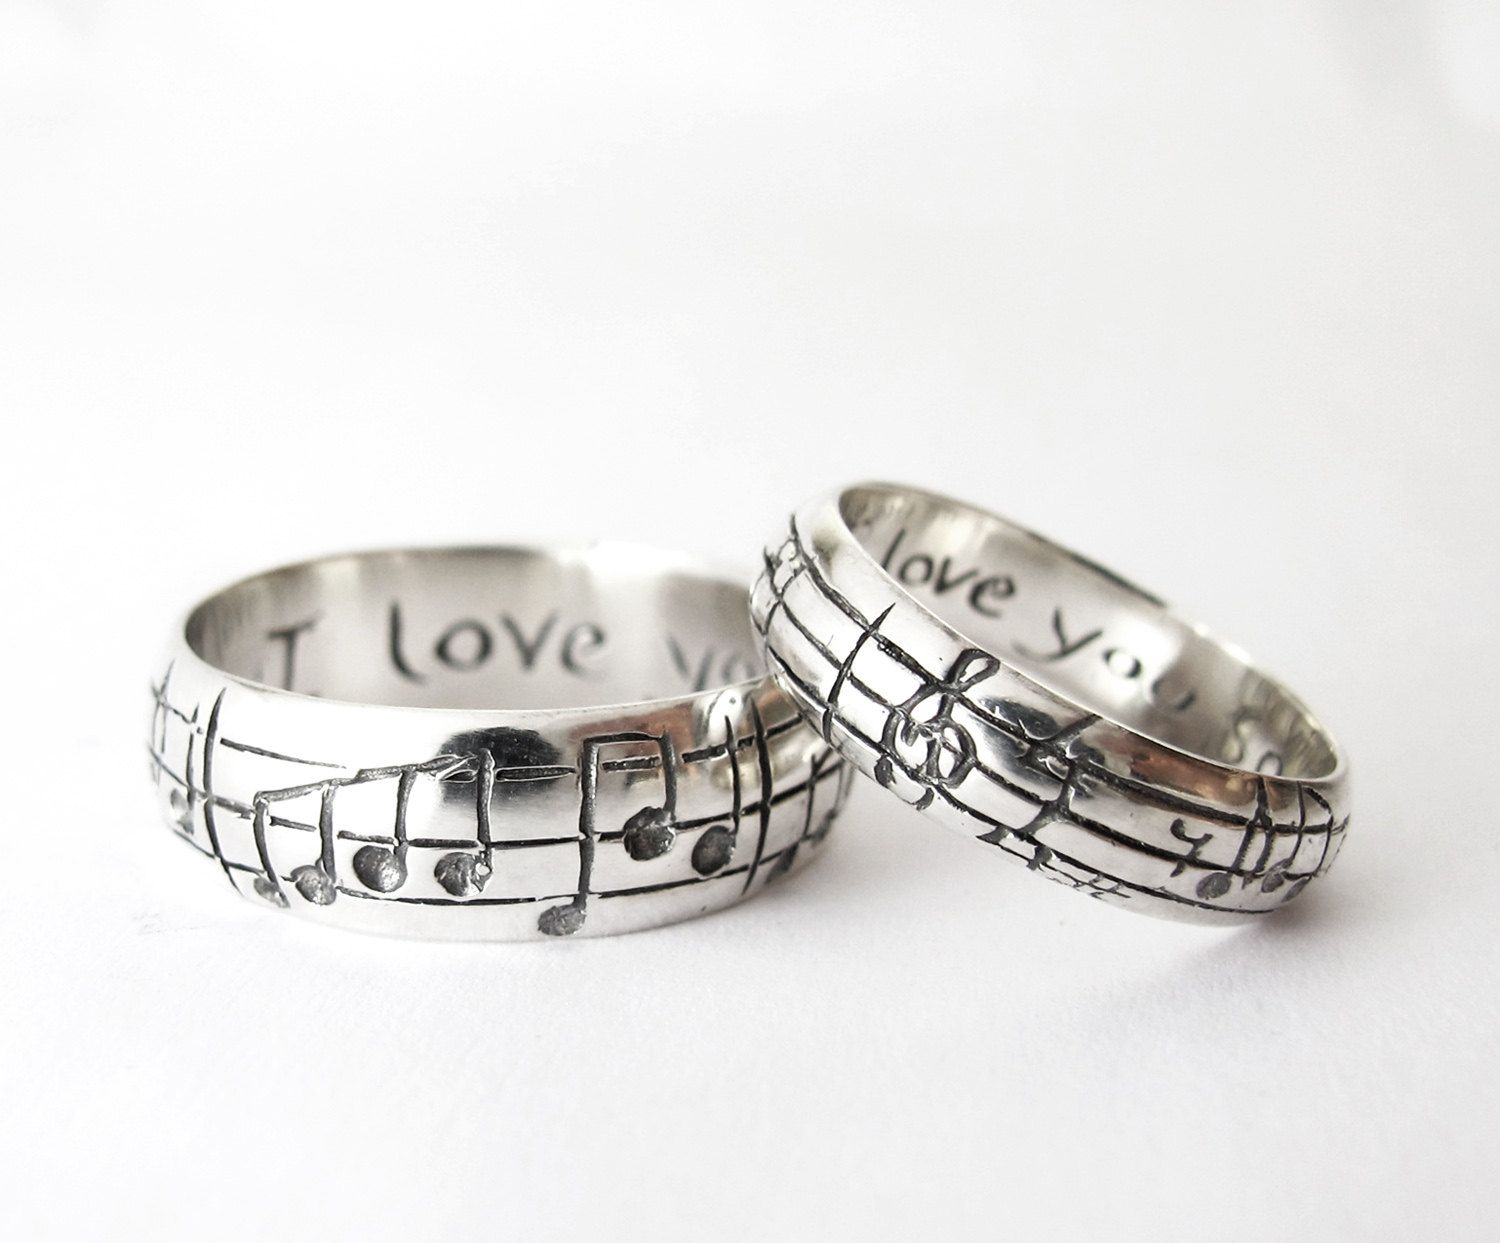 Custom Music Note Wedding Bands  Original Real Music Notes Ring, Sterling  Music Ring, Sheet Music Nerd Wedding Rings, Geekery, Personalize